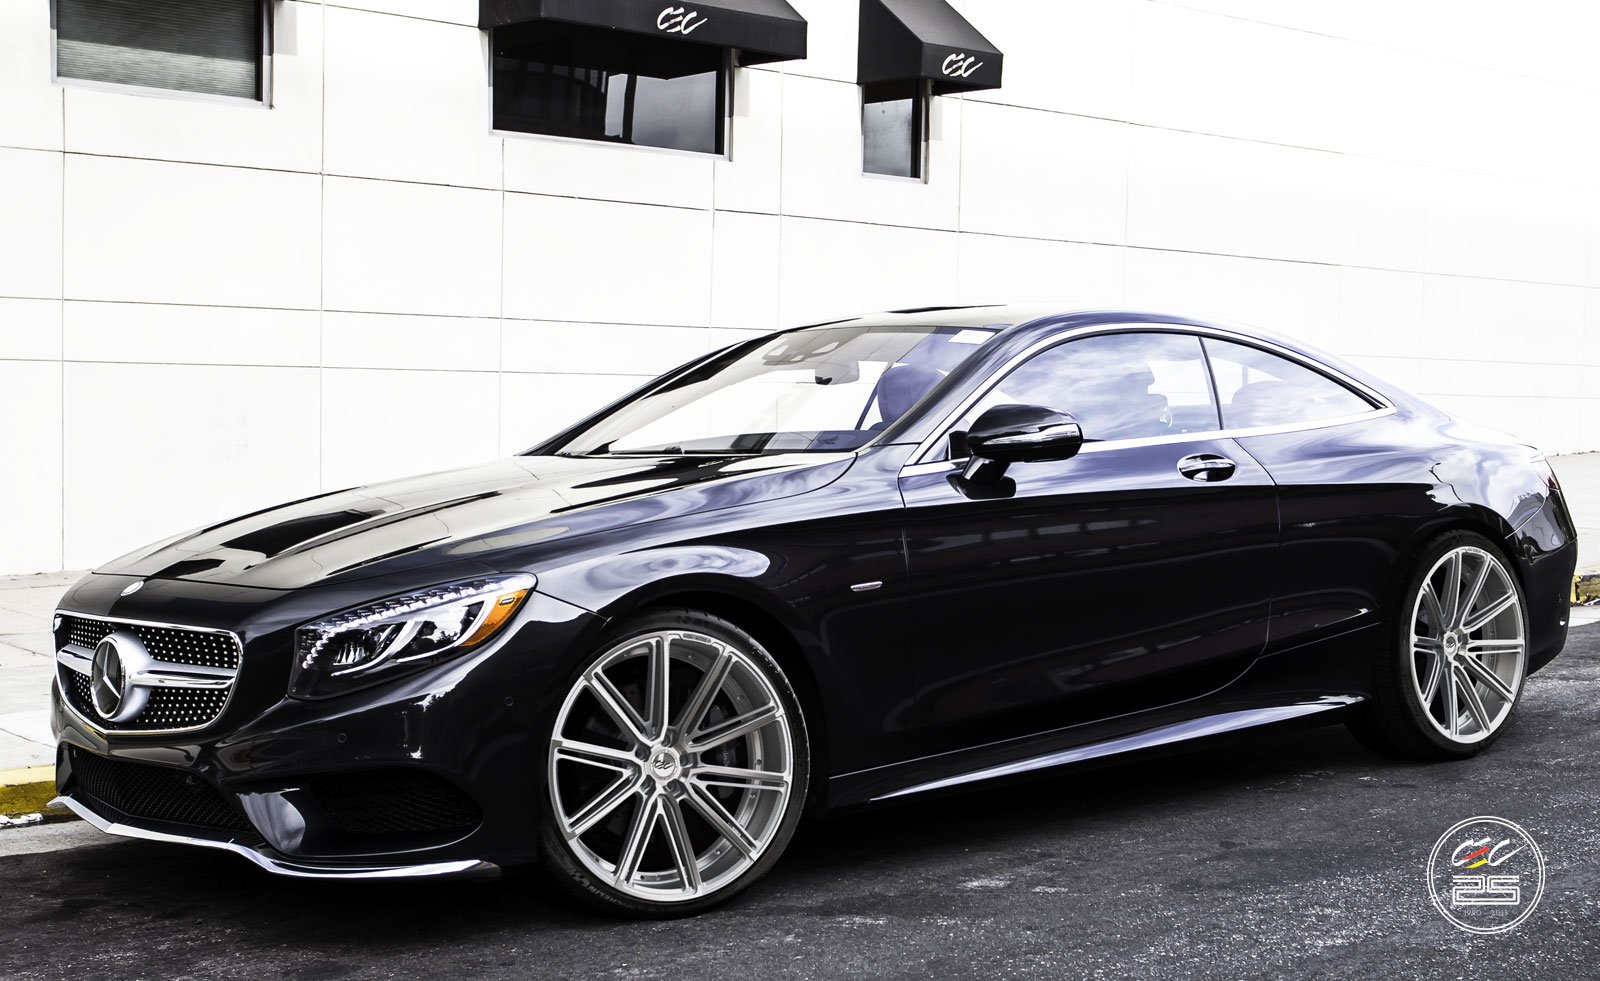 2015 cec wheels tuning cars mercedes benz s550 coupe for Mercedes benz s550 coupe for sale